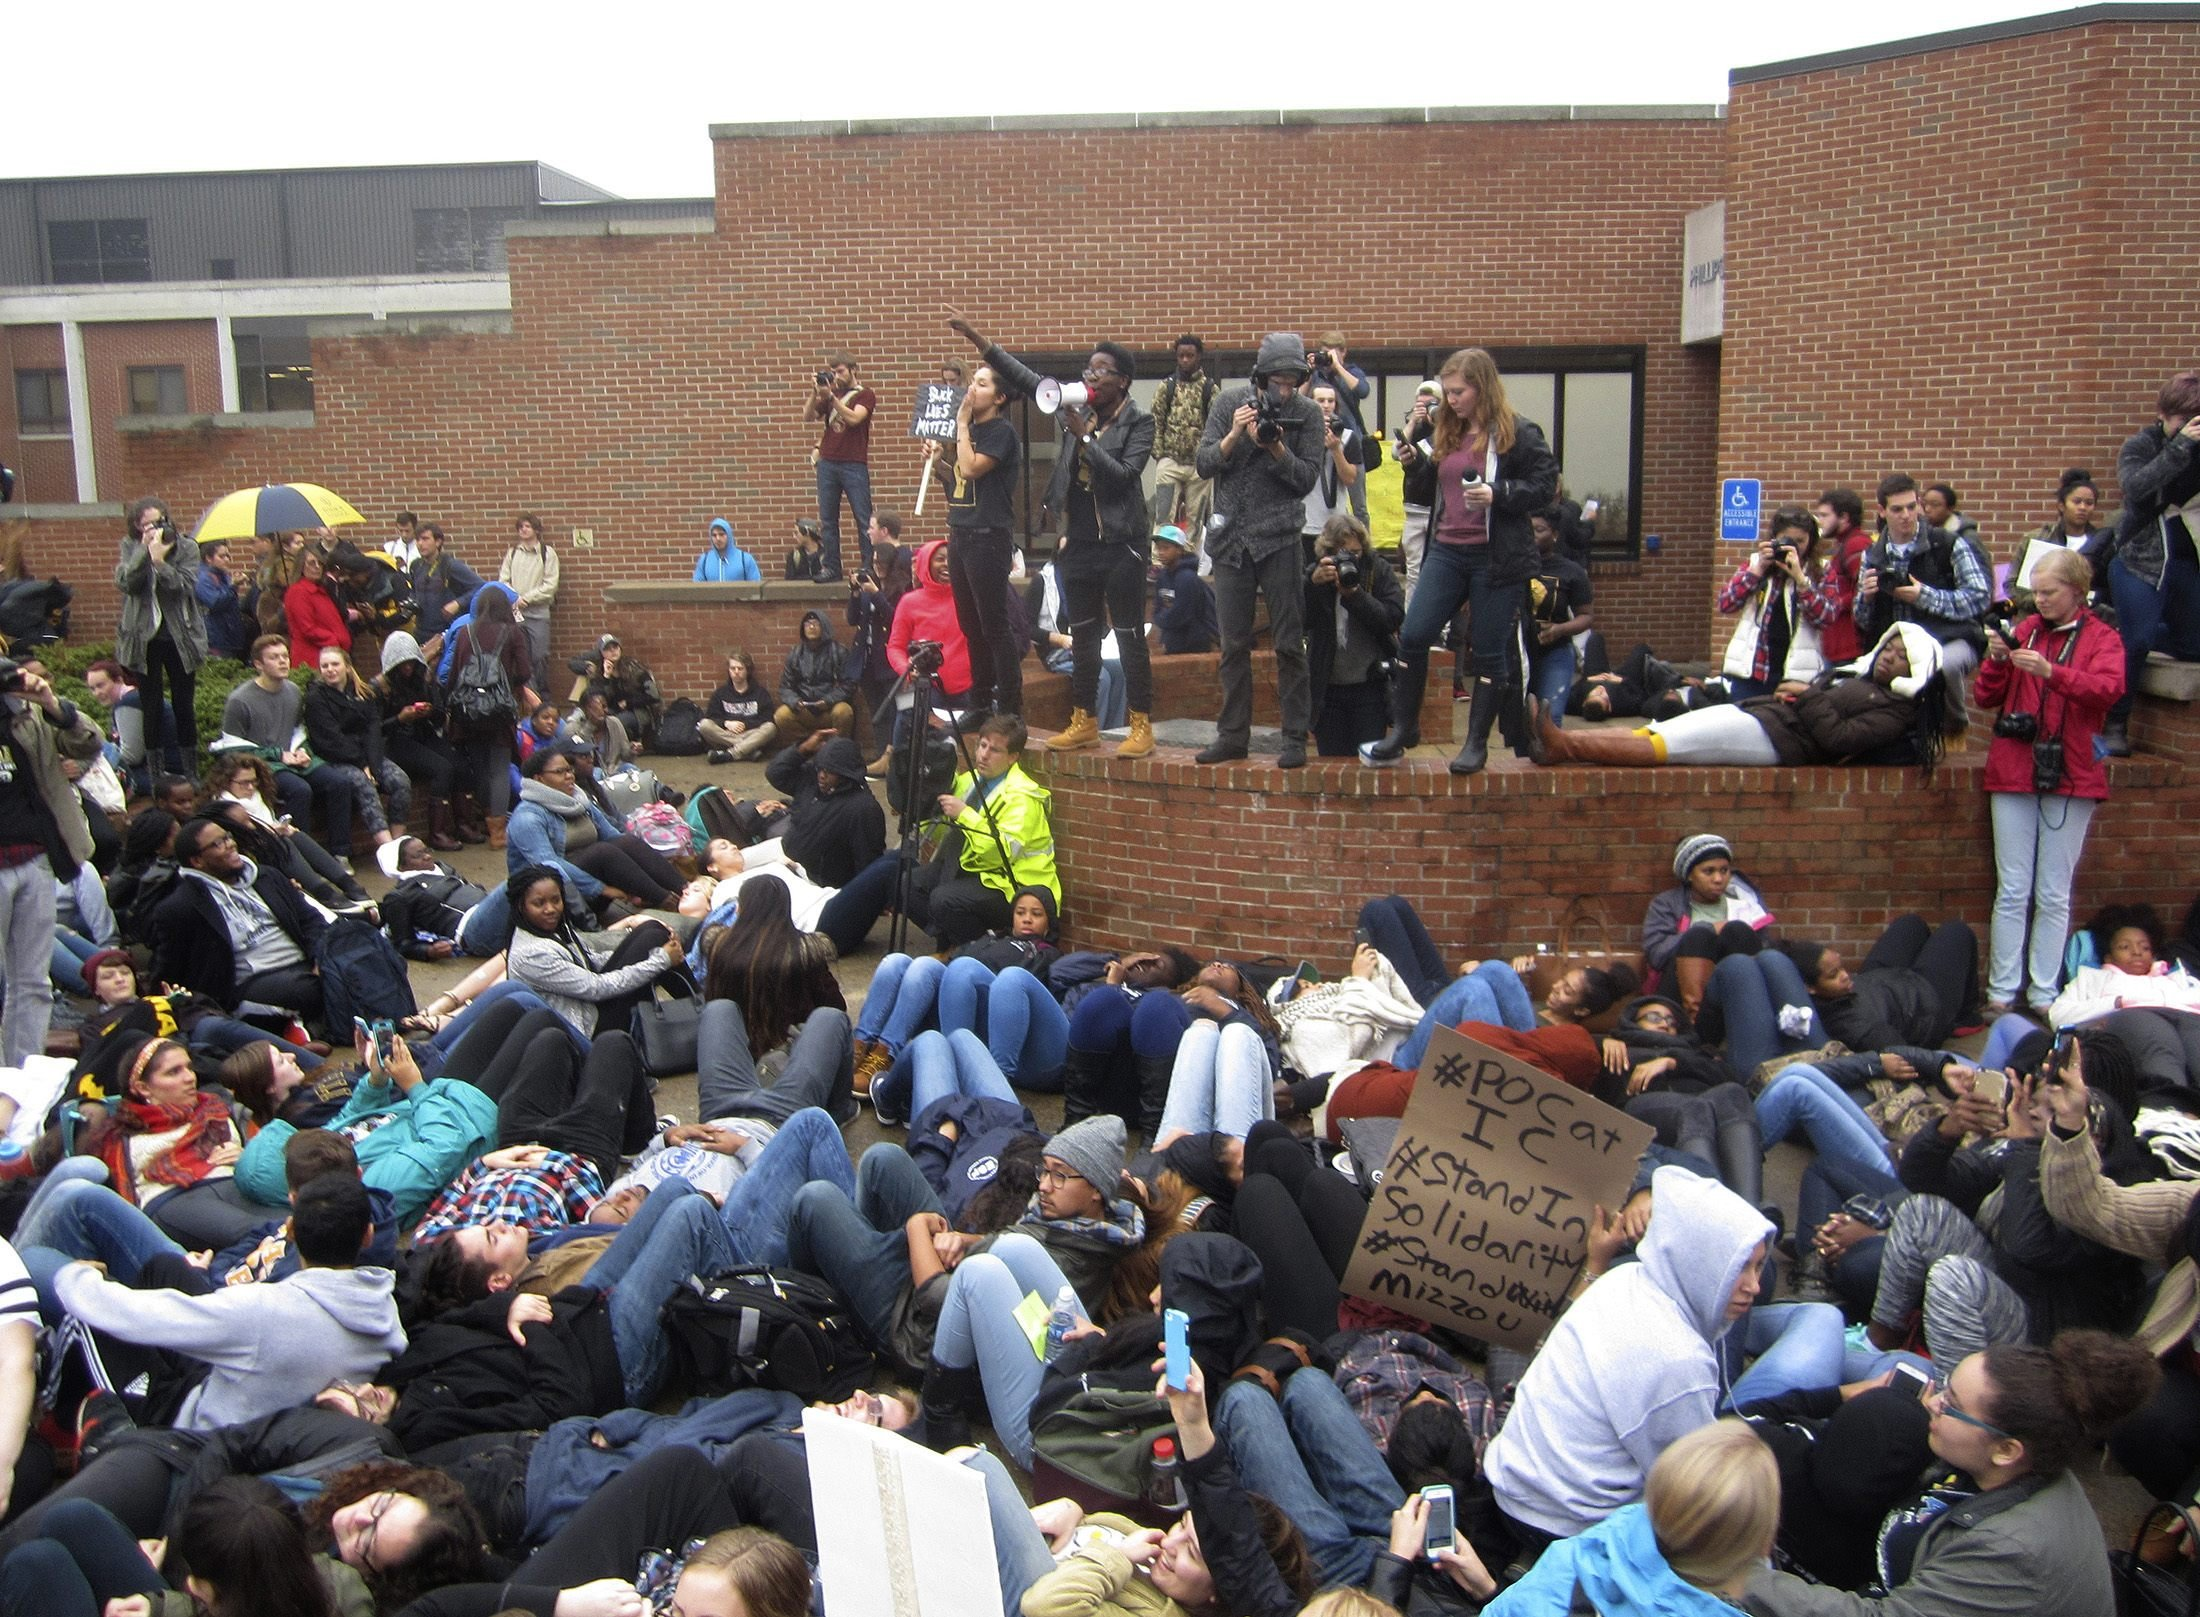 Protestorsr encourage students to lay down as part of a 'die-in' this afternoon at Ithaca College in Ithaca, New York on Nov. 11, 2015.